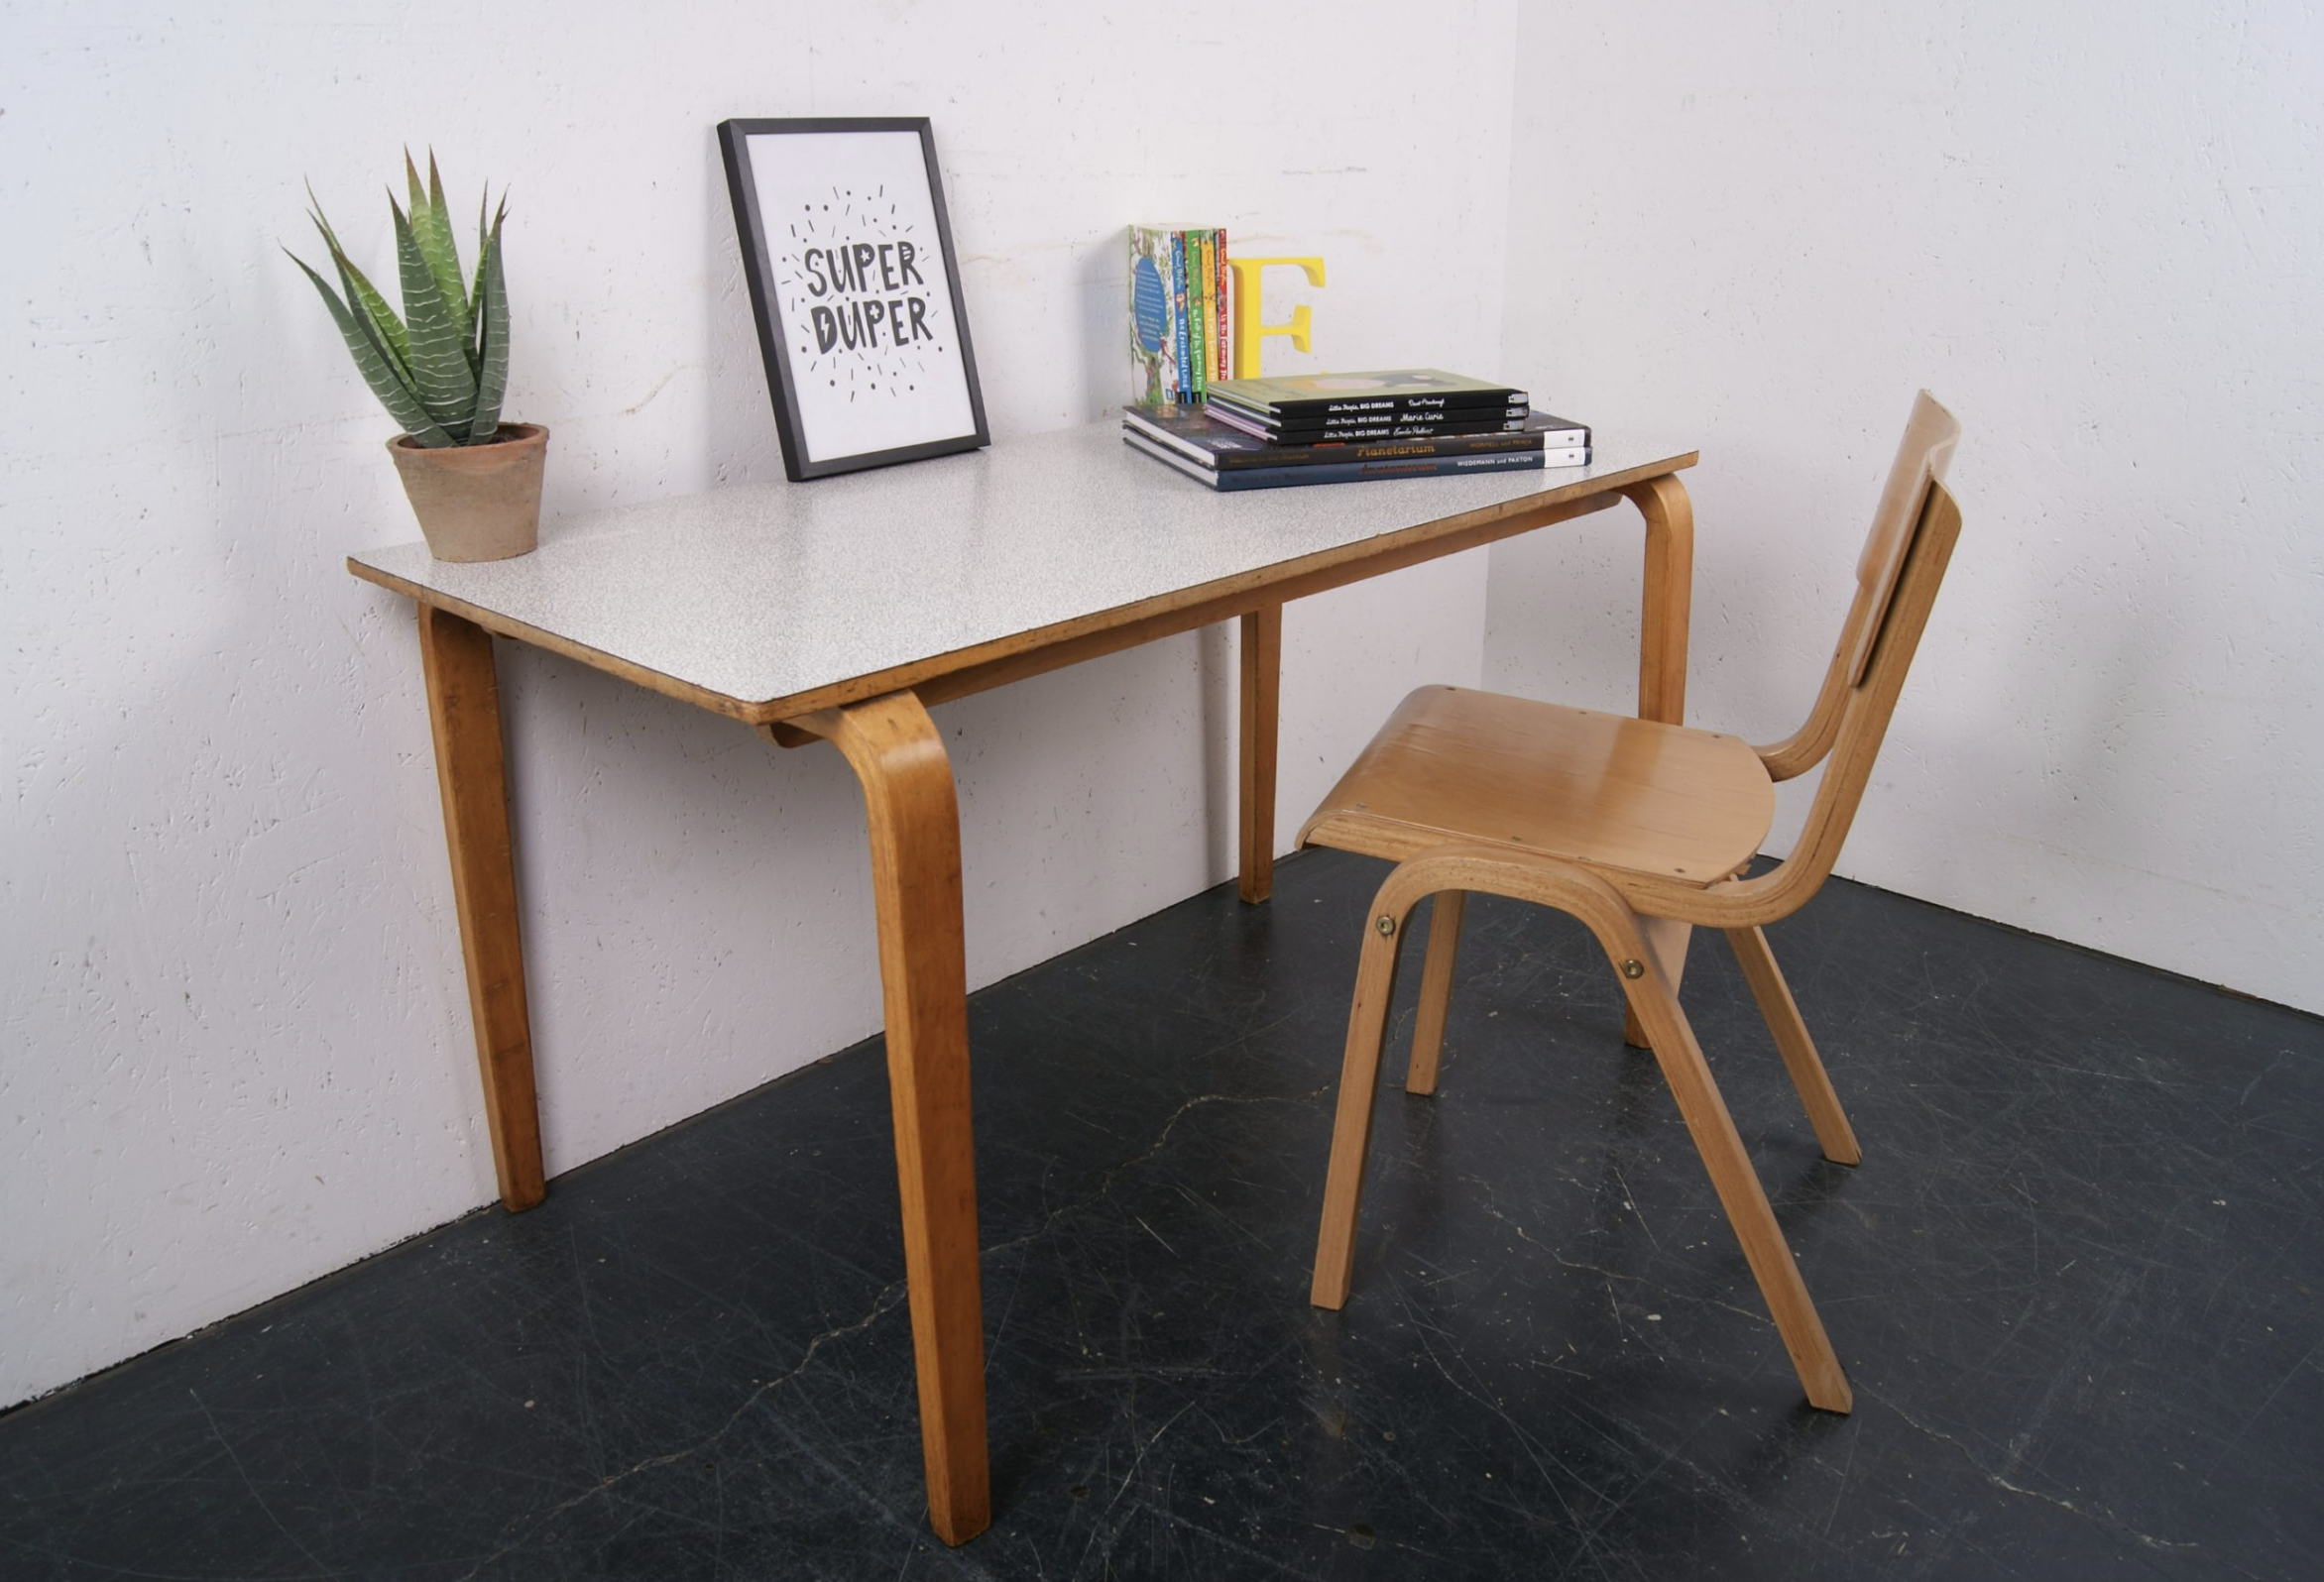 Vintage finds for kids from Blue Ticking (.co.uk). Esavian desk with Formica top